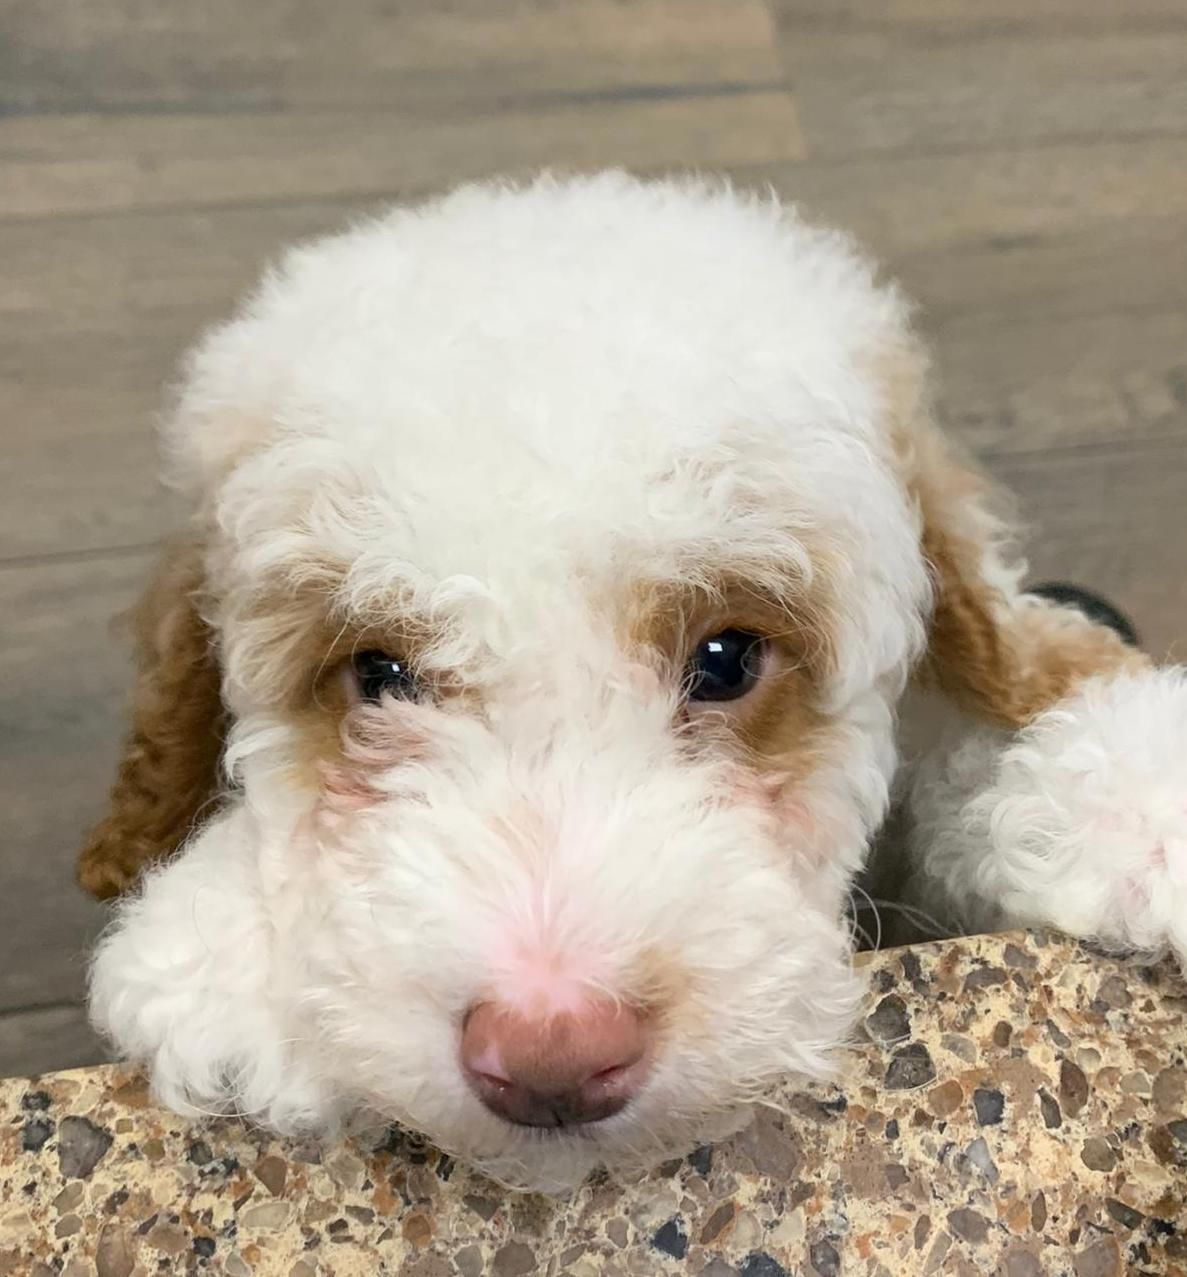 Oh Hi There Cutie Puppy Doglovers Pet Puppylove Puppies Puppyoftheday Petlandflorida In 2020 Puppies Cute Animals Dog Lovers